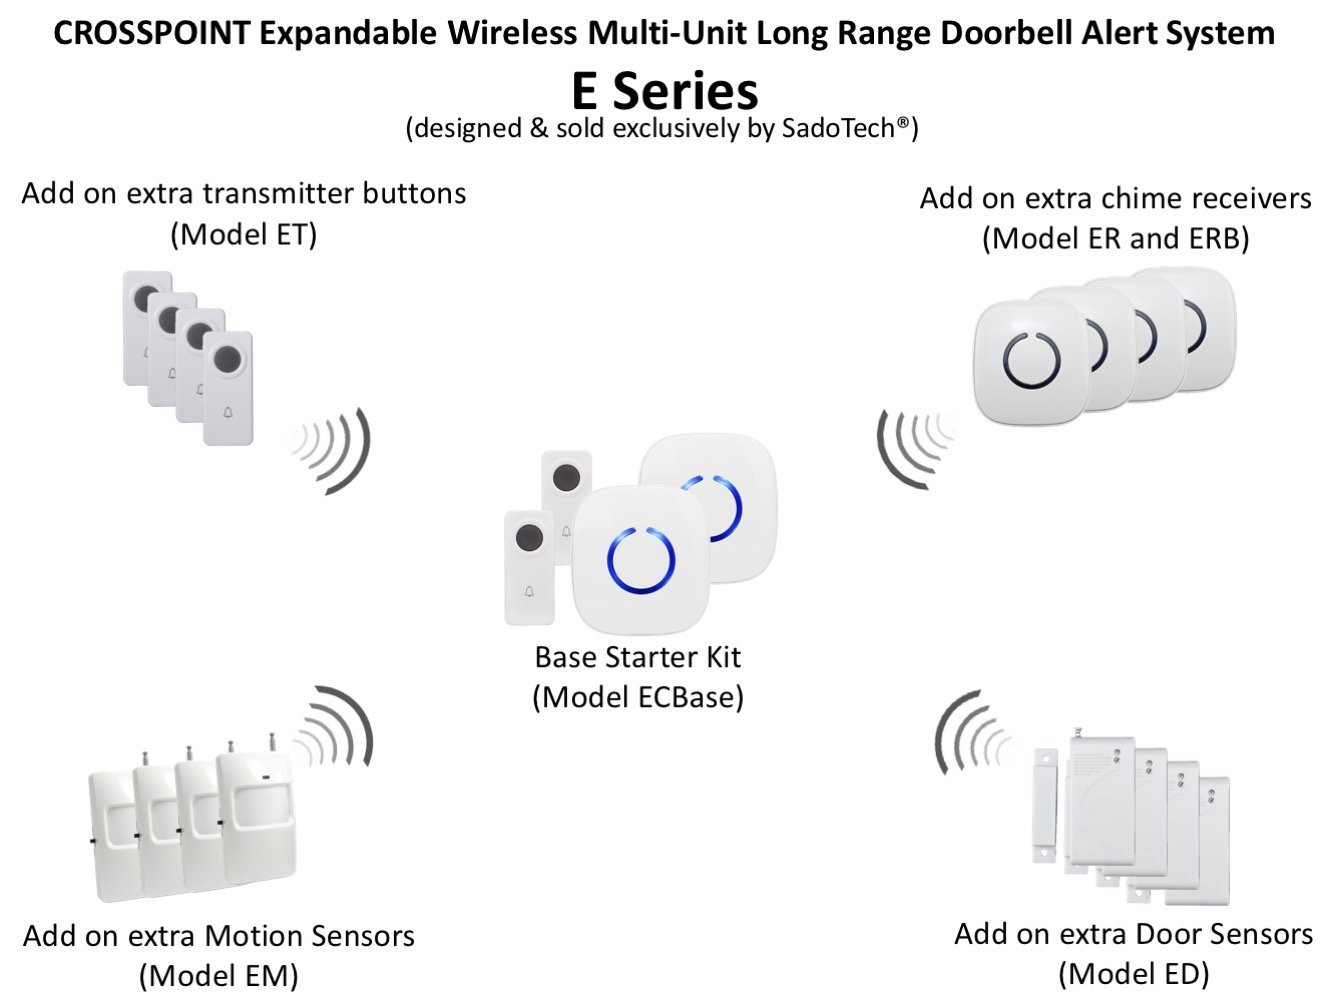 Crosspoint Extra Add On Remote Transmitter Button For The Expandable Doorbells In Parallel Wiring Diagrams Wireless Doorbell Alert System Model Et White